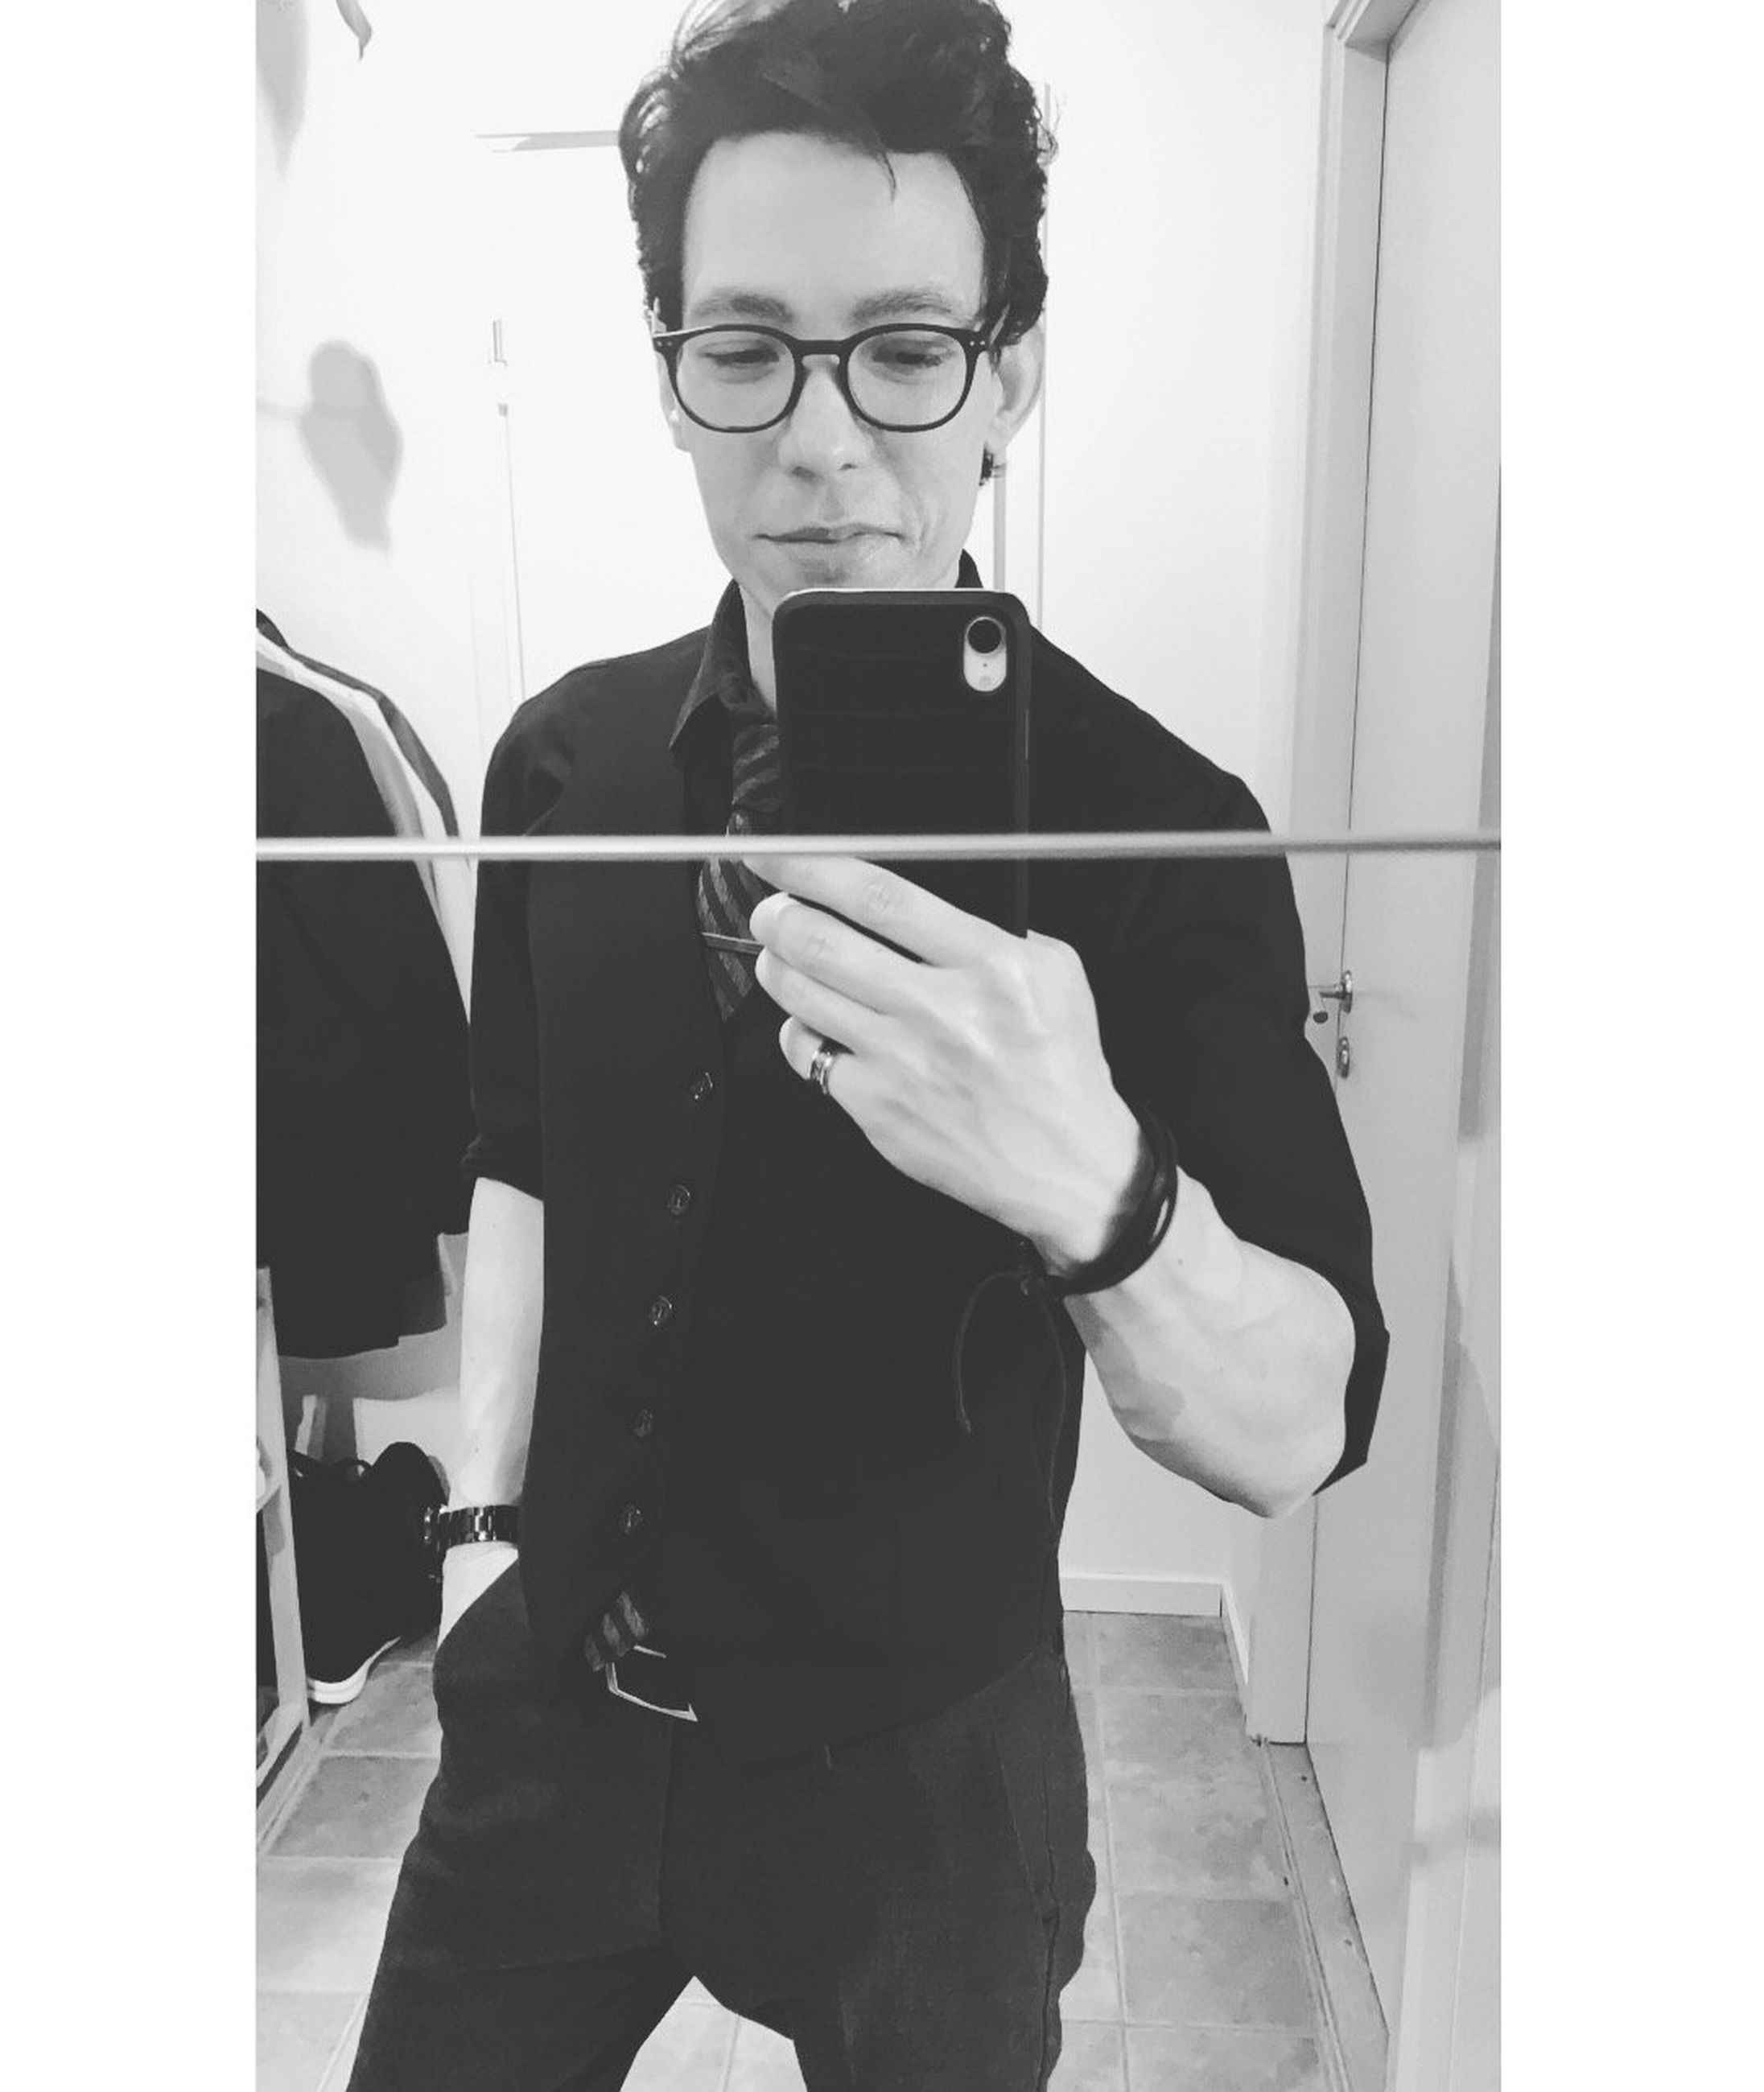 glasses, one person, eyeglasses, standing, real people, technology, wireless technology, holding, mobile phone, young men, front view, young adult, casual clothing, communication, smart phone, indoors, lifestyles, three quarter length, mirror